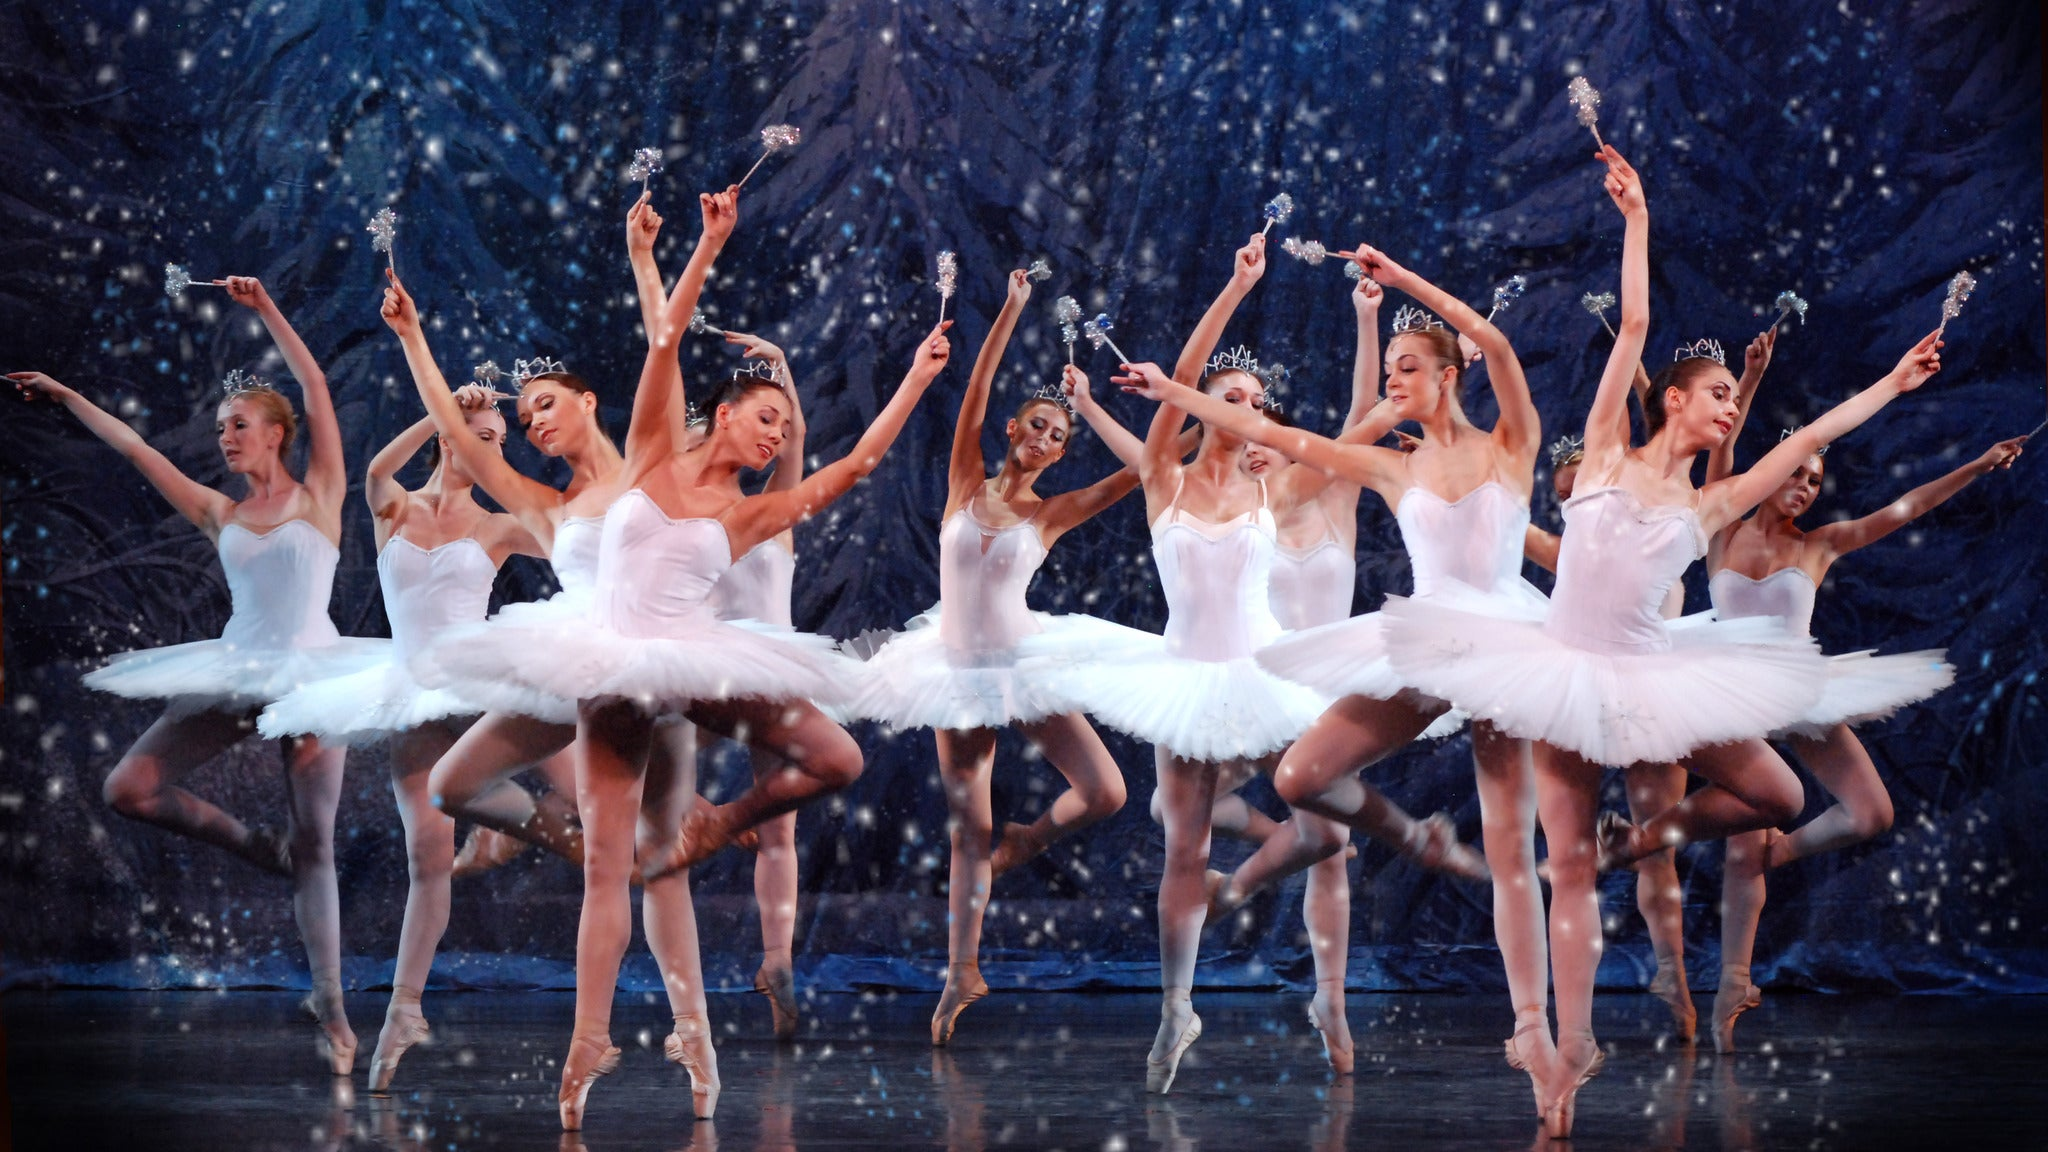 Central California Ballet's The Nutcracker